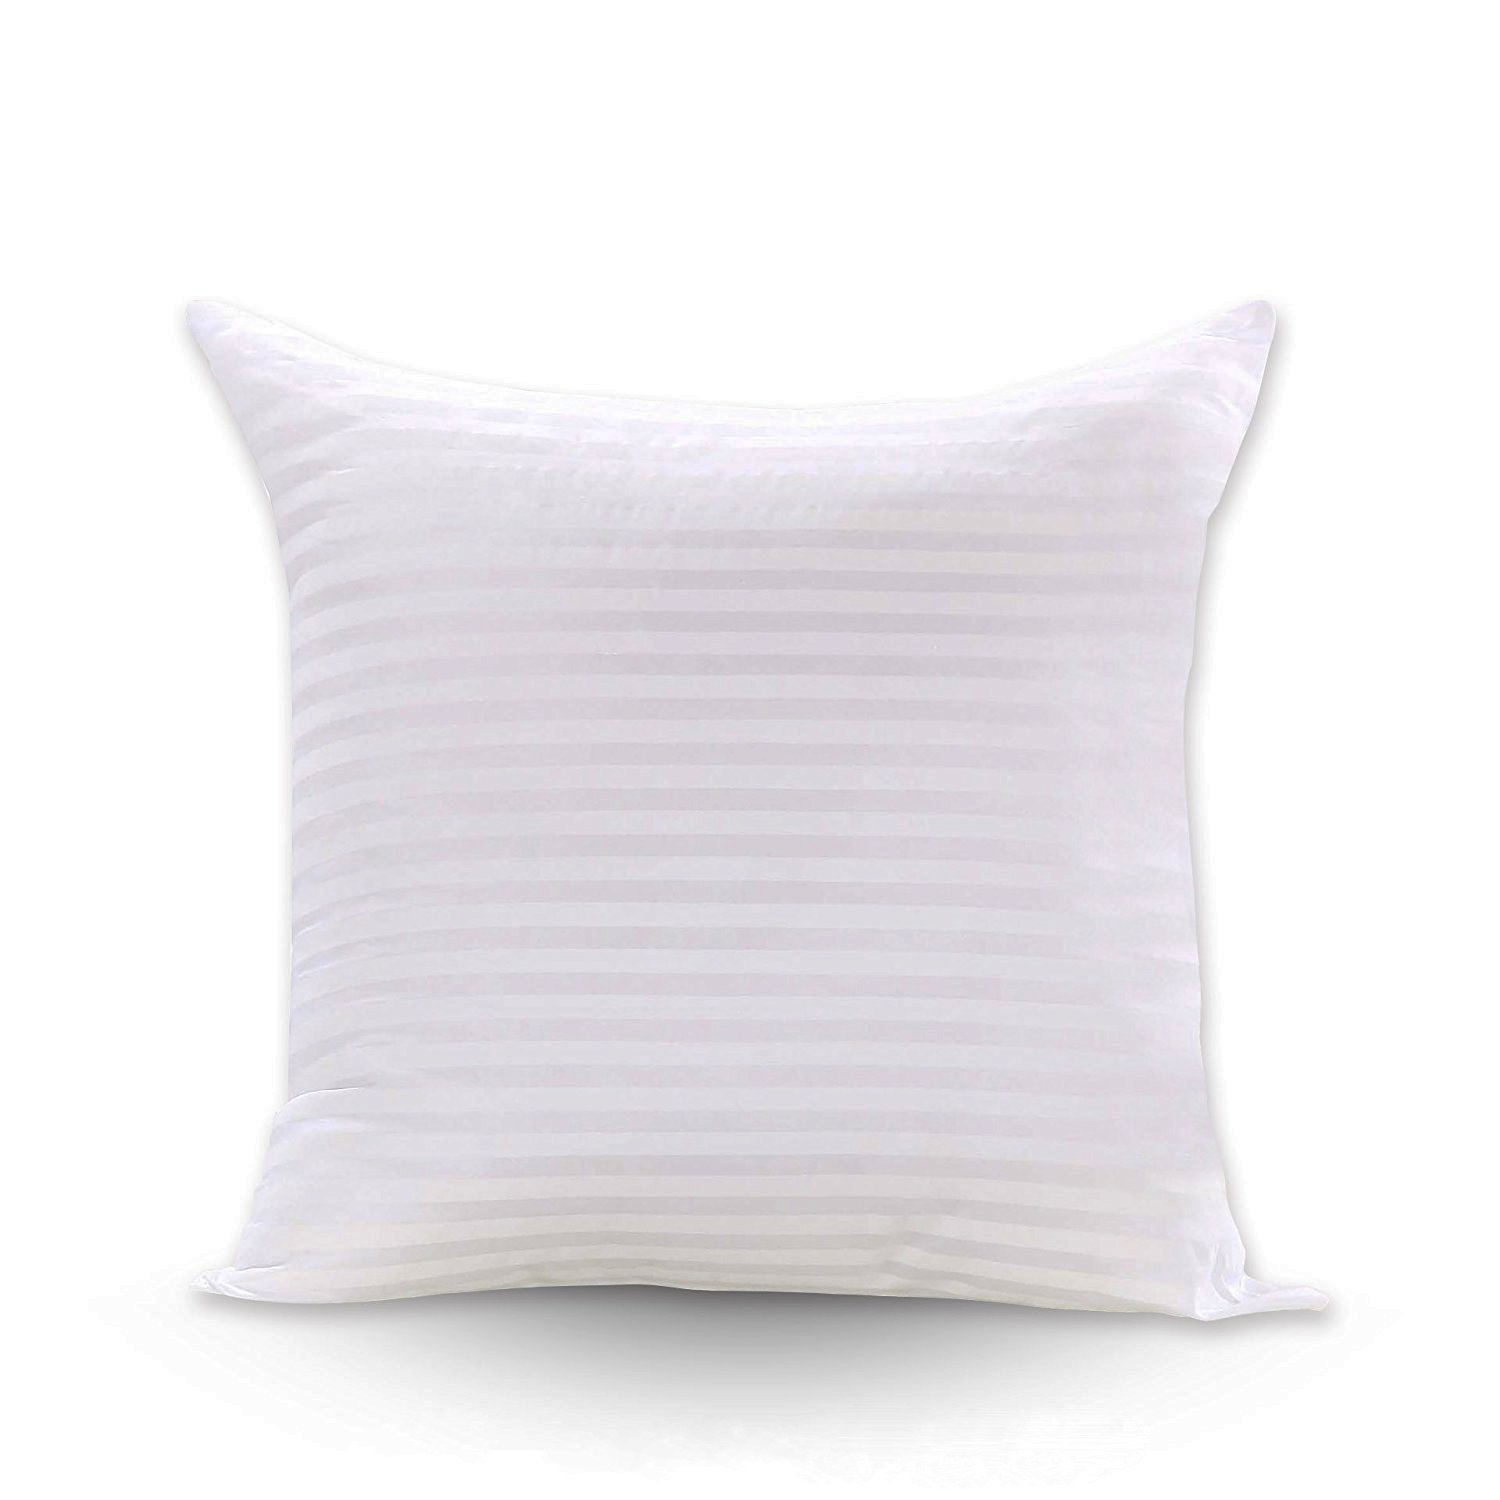 FabricMCC Throw Pillow Inserts Poly White Pillow Sham Hypoallergenic Stuffer Square Pillow Insert Form (20x20) 20x20 form